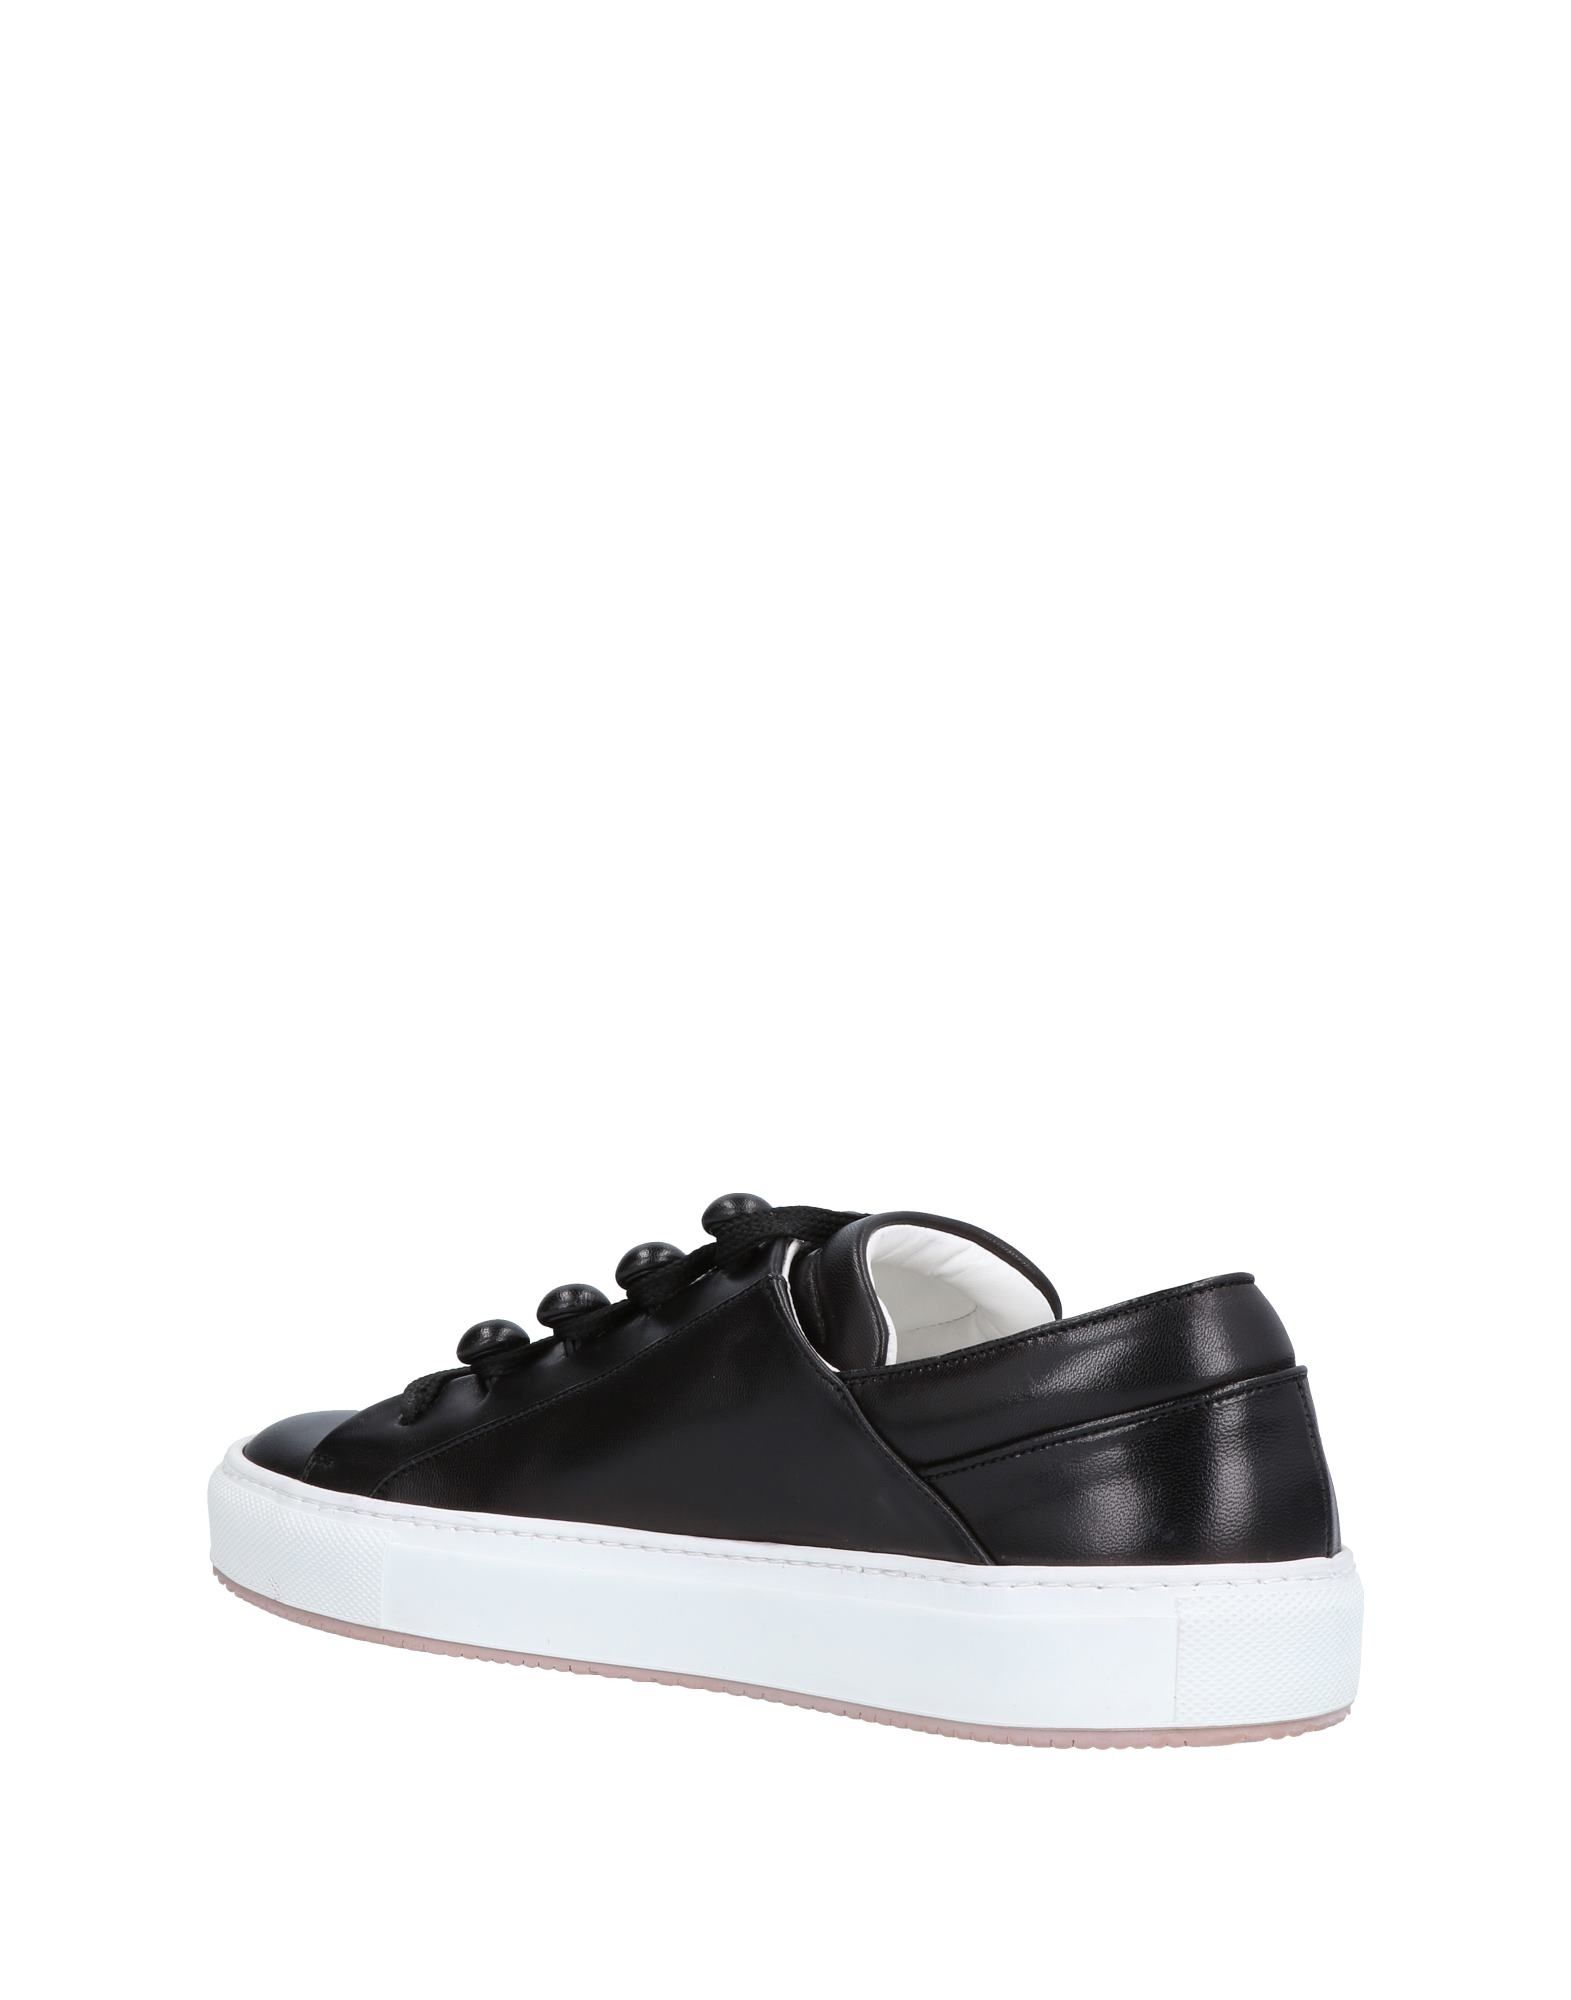 L' Autre Chose Sneakers - Women L' L' L' Autre Chose Sneakers online on  United Kingdom - 11487502EG 4353de